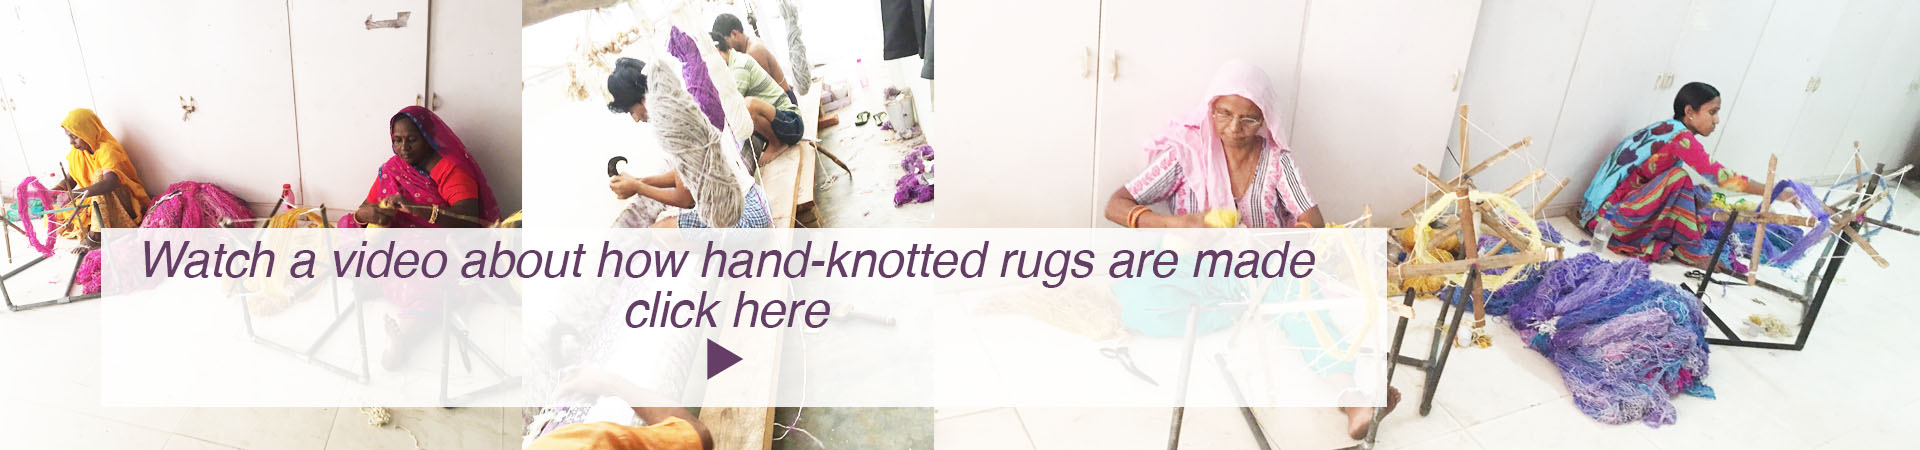 hand-knotted rug video